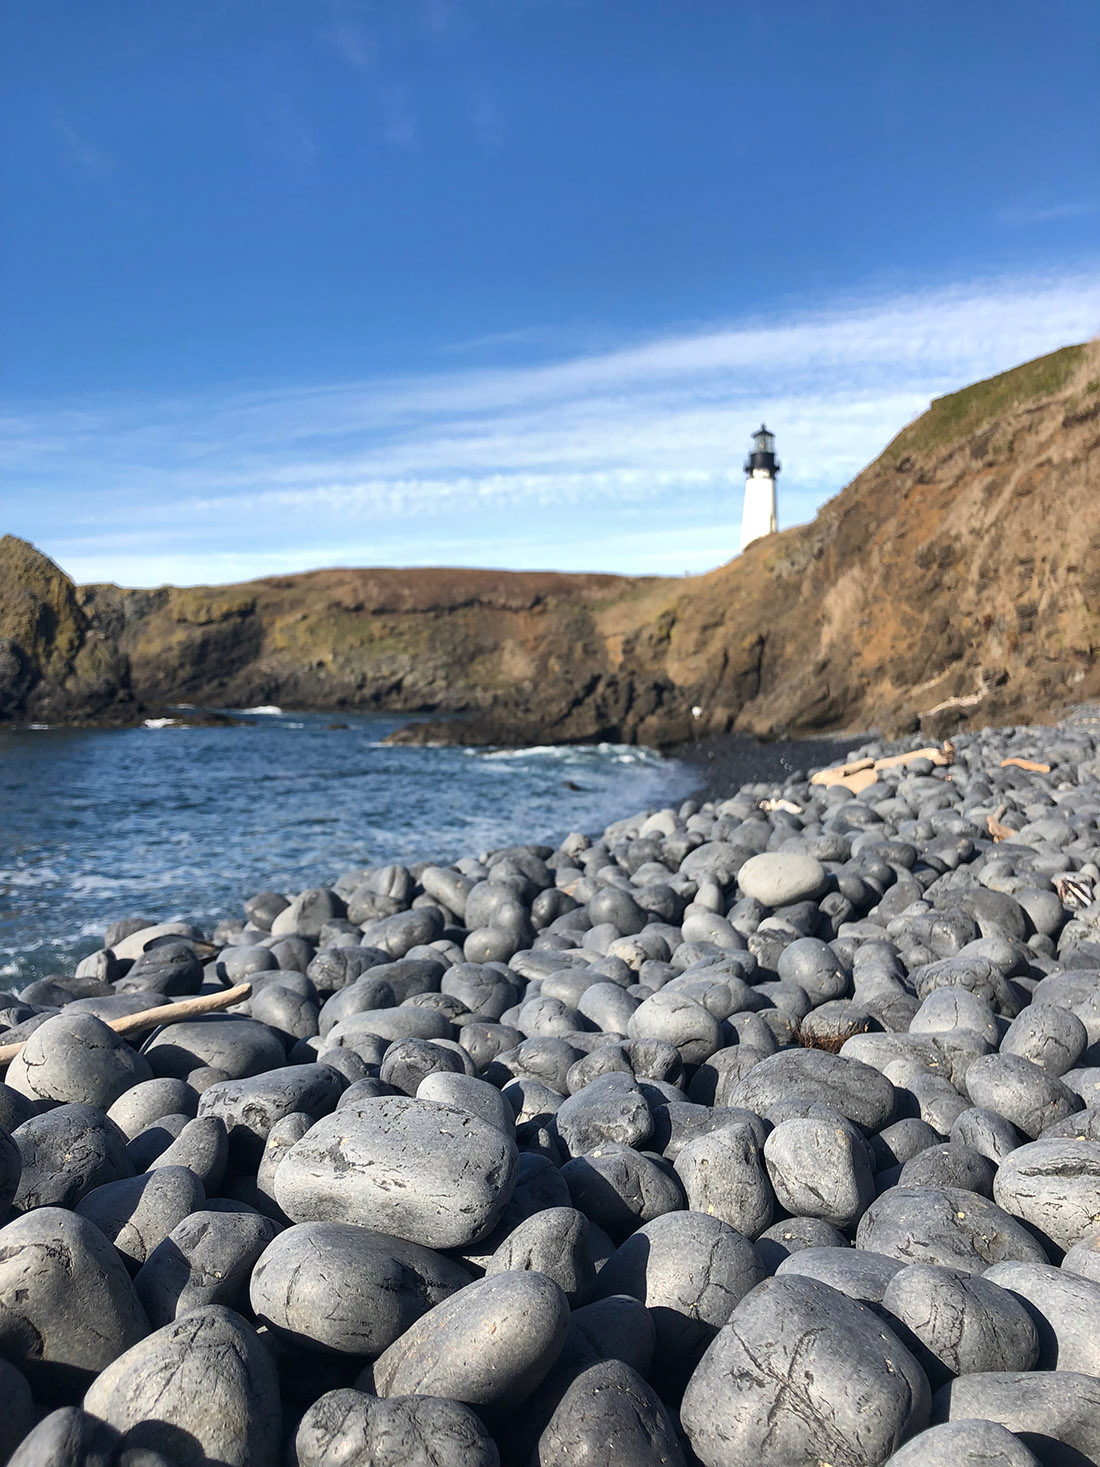 A rocky beach stretches into the background toward some cliffs, upon which a lighthouse is perched.